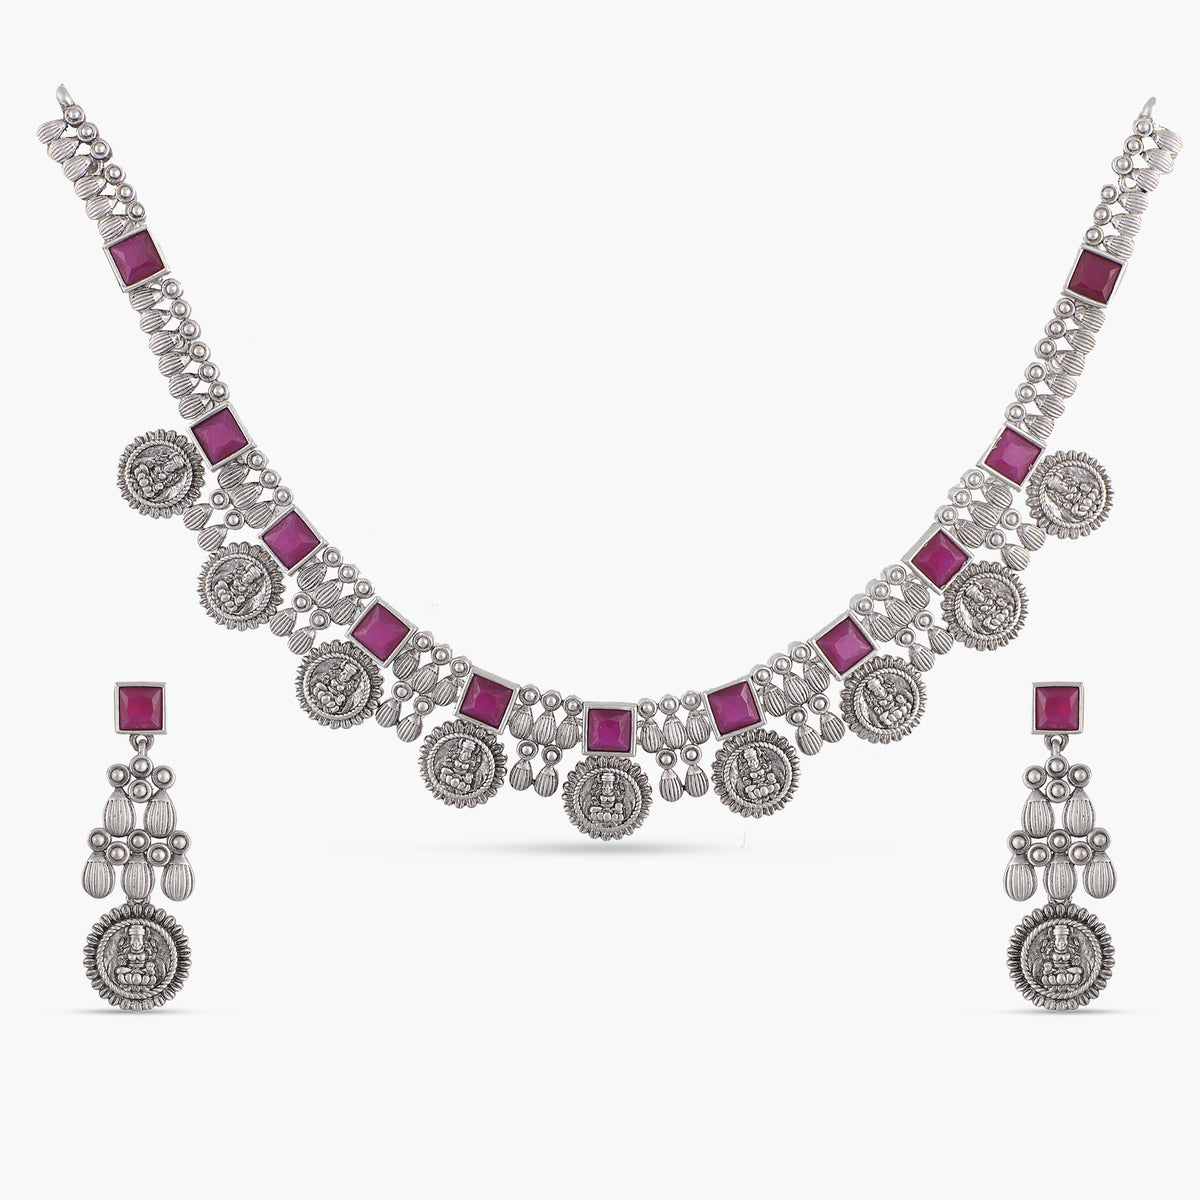 Dwija Antique Silver Necklace Set